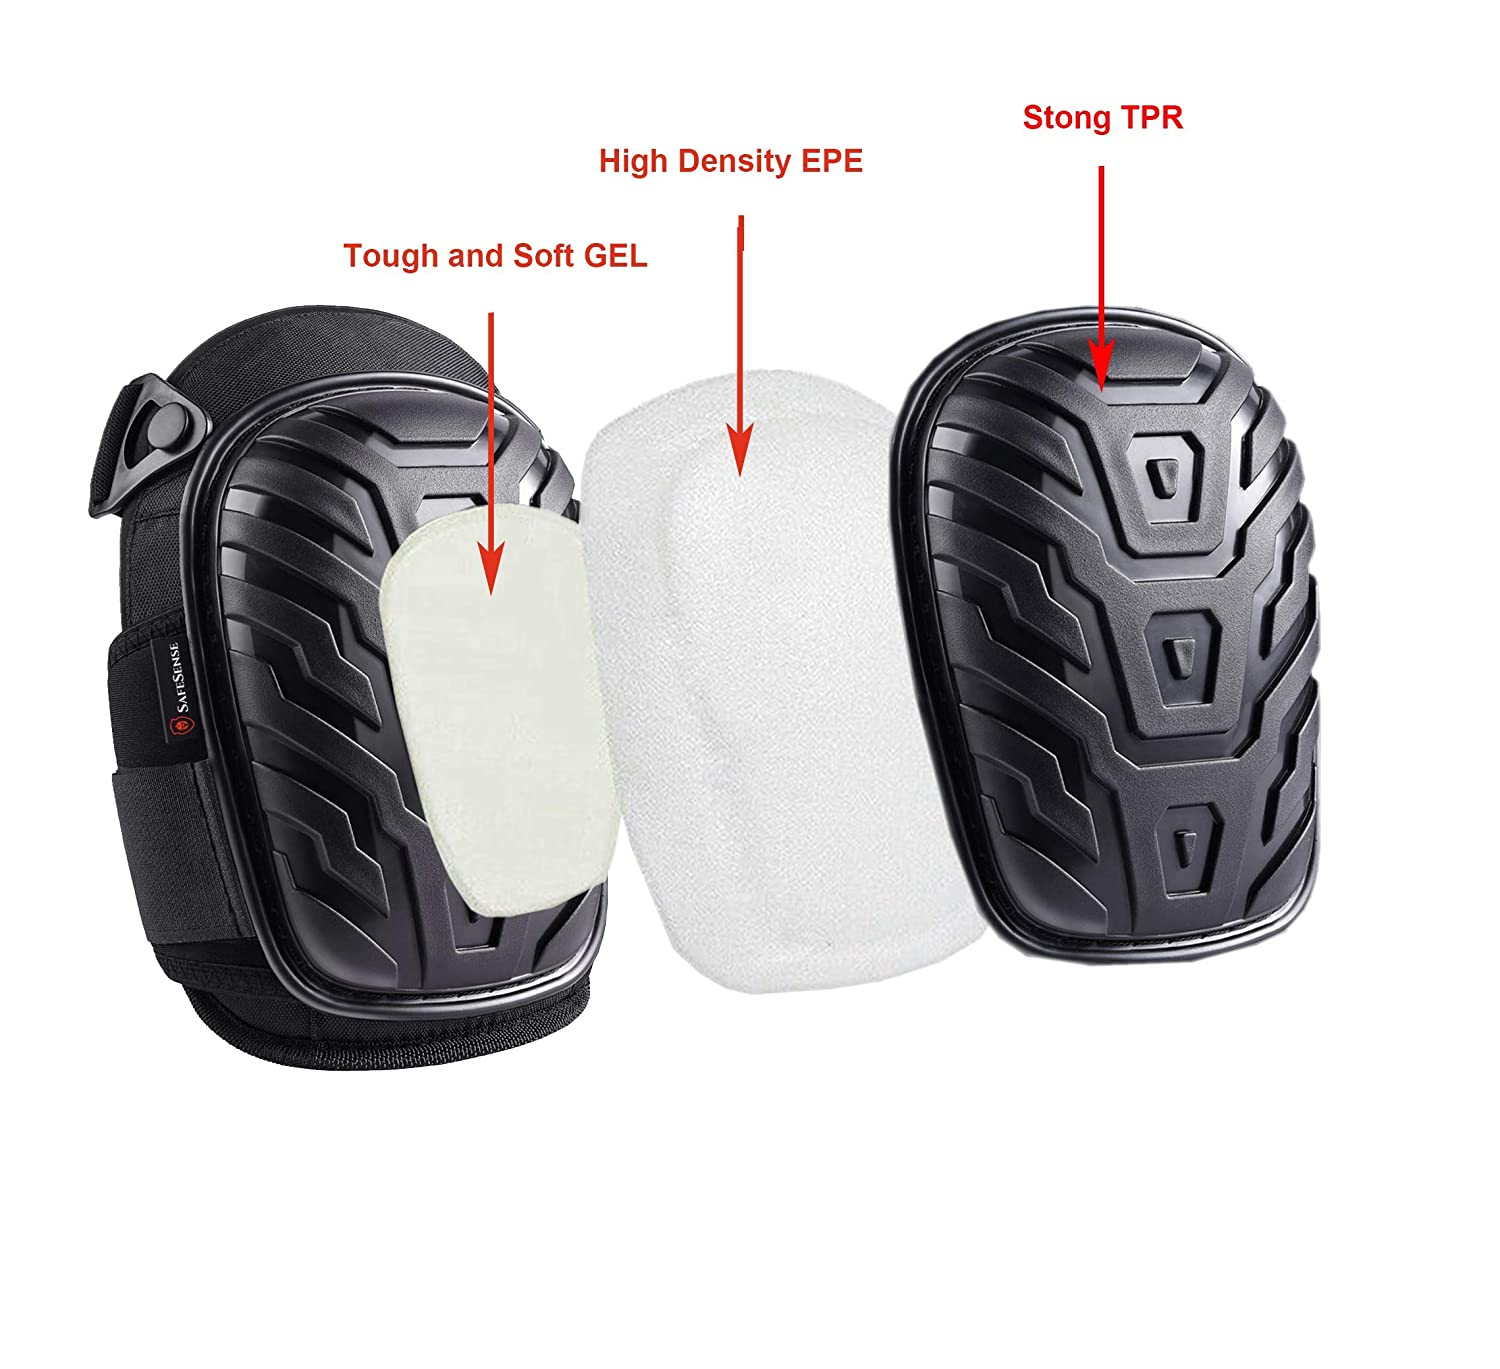 Knee Pads for Work Construction Gardening Cleaning Heavy Duty EVA Foam Padding and Comfortable Gel Cushion with Strong Double and Adjustable Neoprene Straps Black